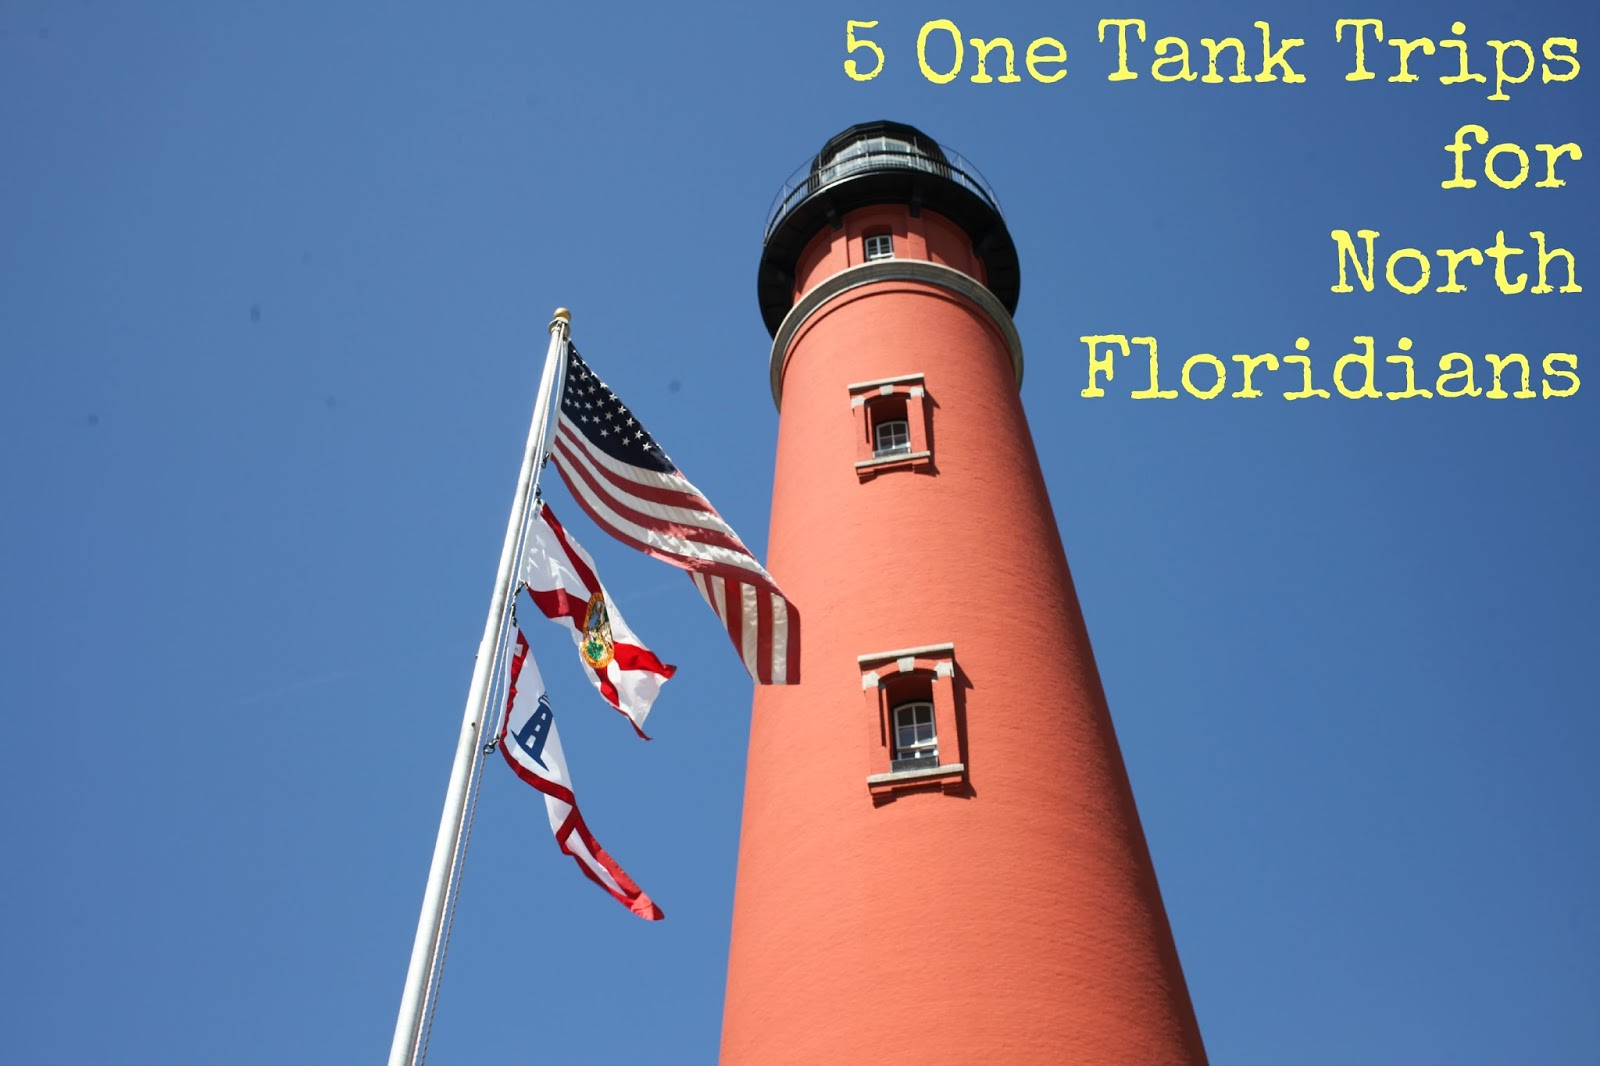 5 One Tank Trips for North Floridians